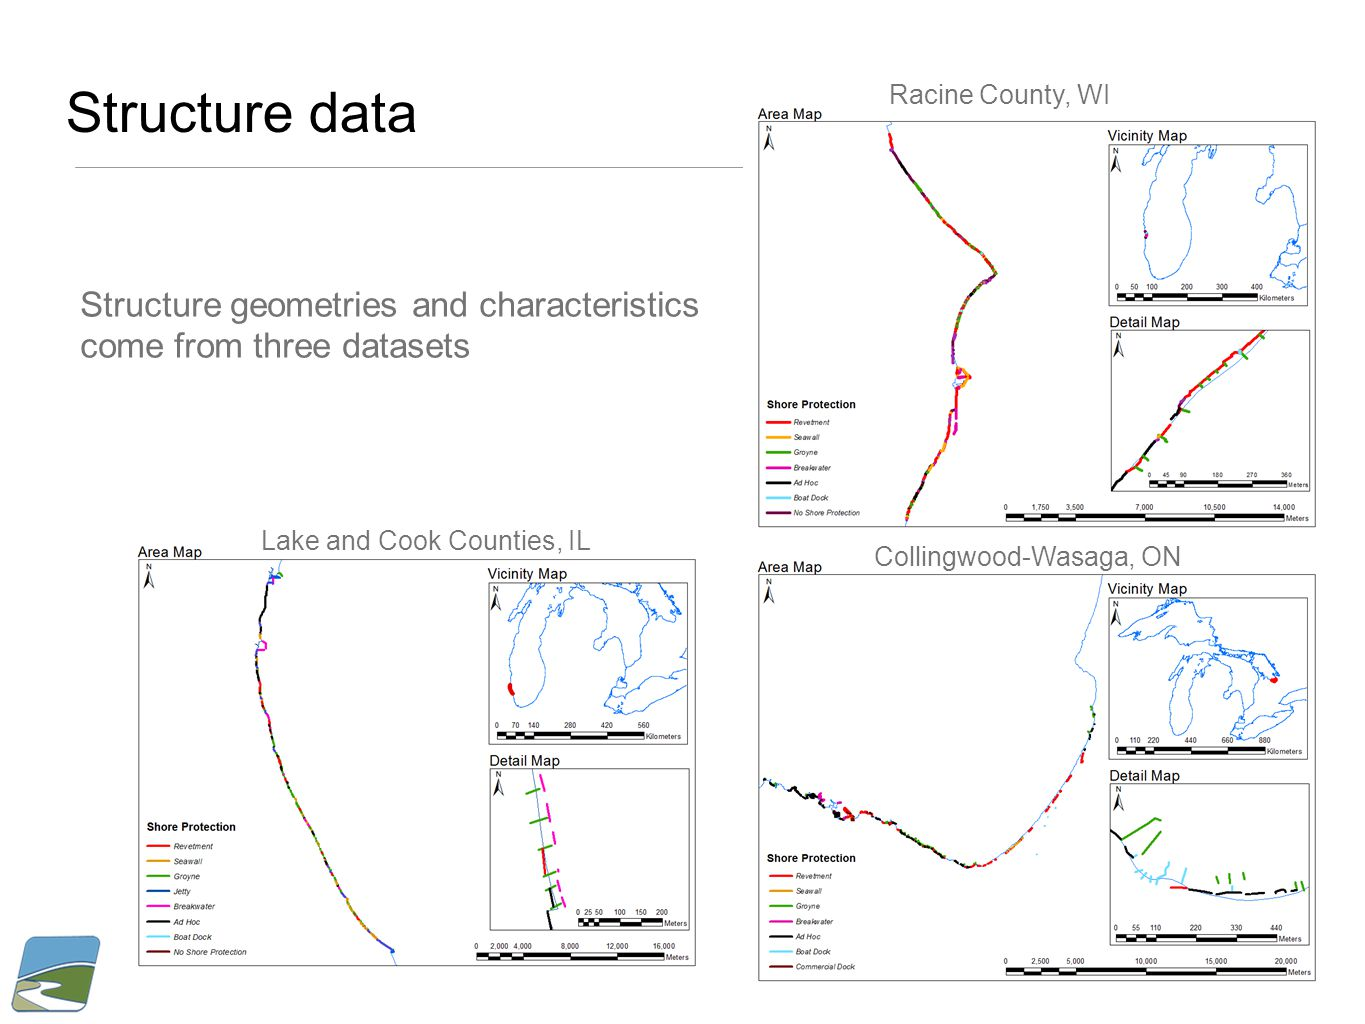 Structure data Structure geometries and characteristics come from three datasets Lake and Cook Counties, IL Racine County, WI Collingwood-Wasaga, ON